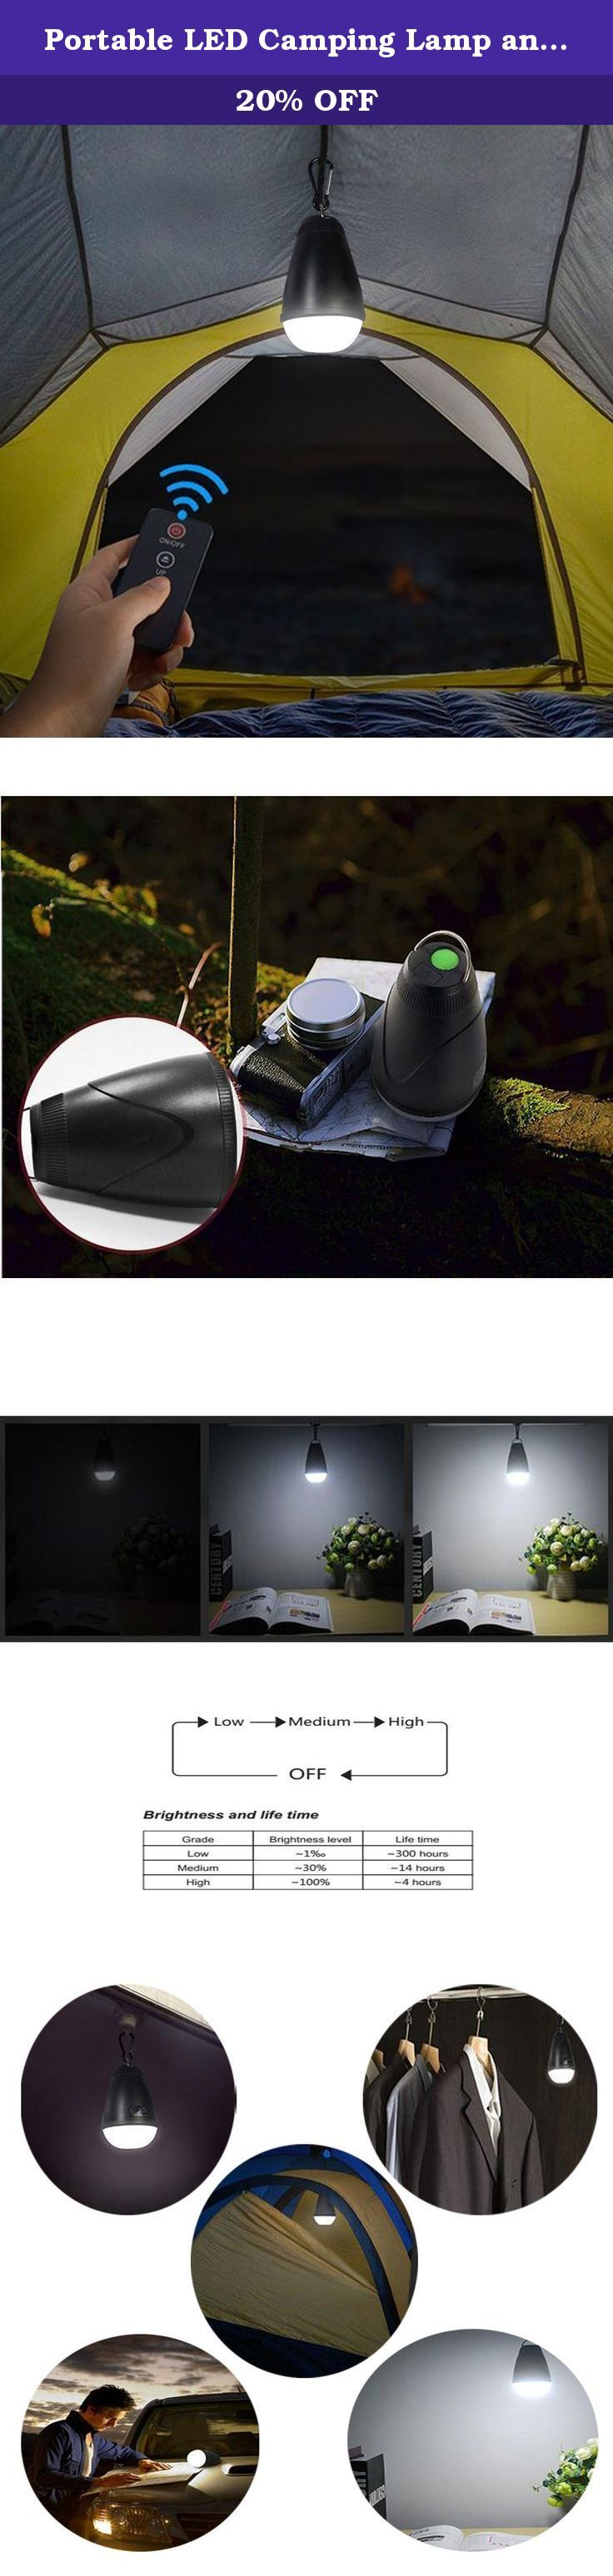 Portable LED Camping Lamp and Remote Controller Waterproof Outdoor Tent Lantern ,Black. This portable LED camping lamp easy to use and charge. The overall device is small and compact. Thus, it is very easy to operate it in urgent situations.Turn off the lights and there are two kinds of patterns:Hold down the power button for 2-3 seconds or the wireless remote control function..When the indicator keeps flashing 3times every 2seconds means need charging immediately.The indicator will keep...